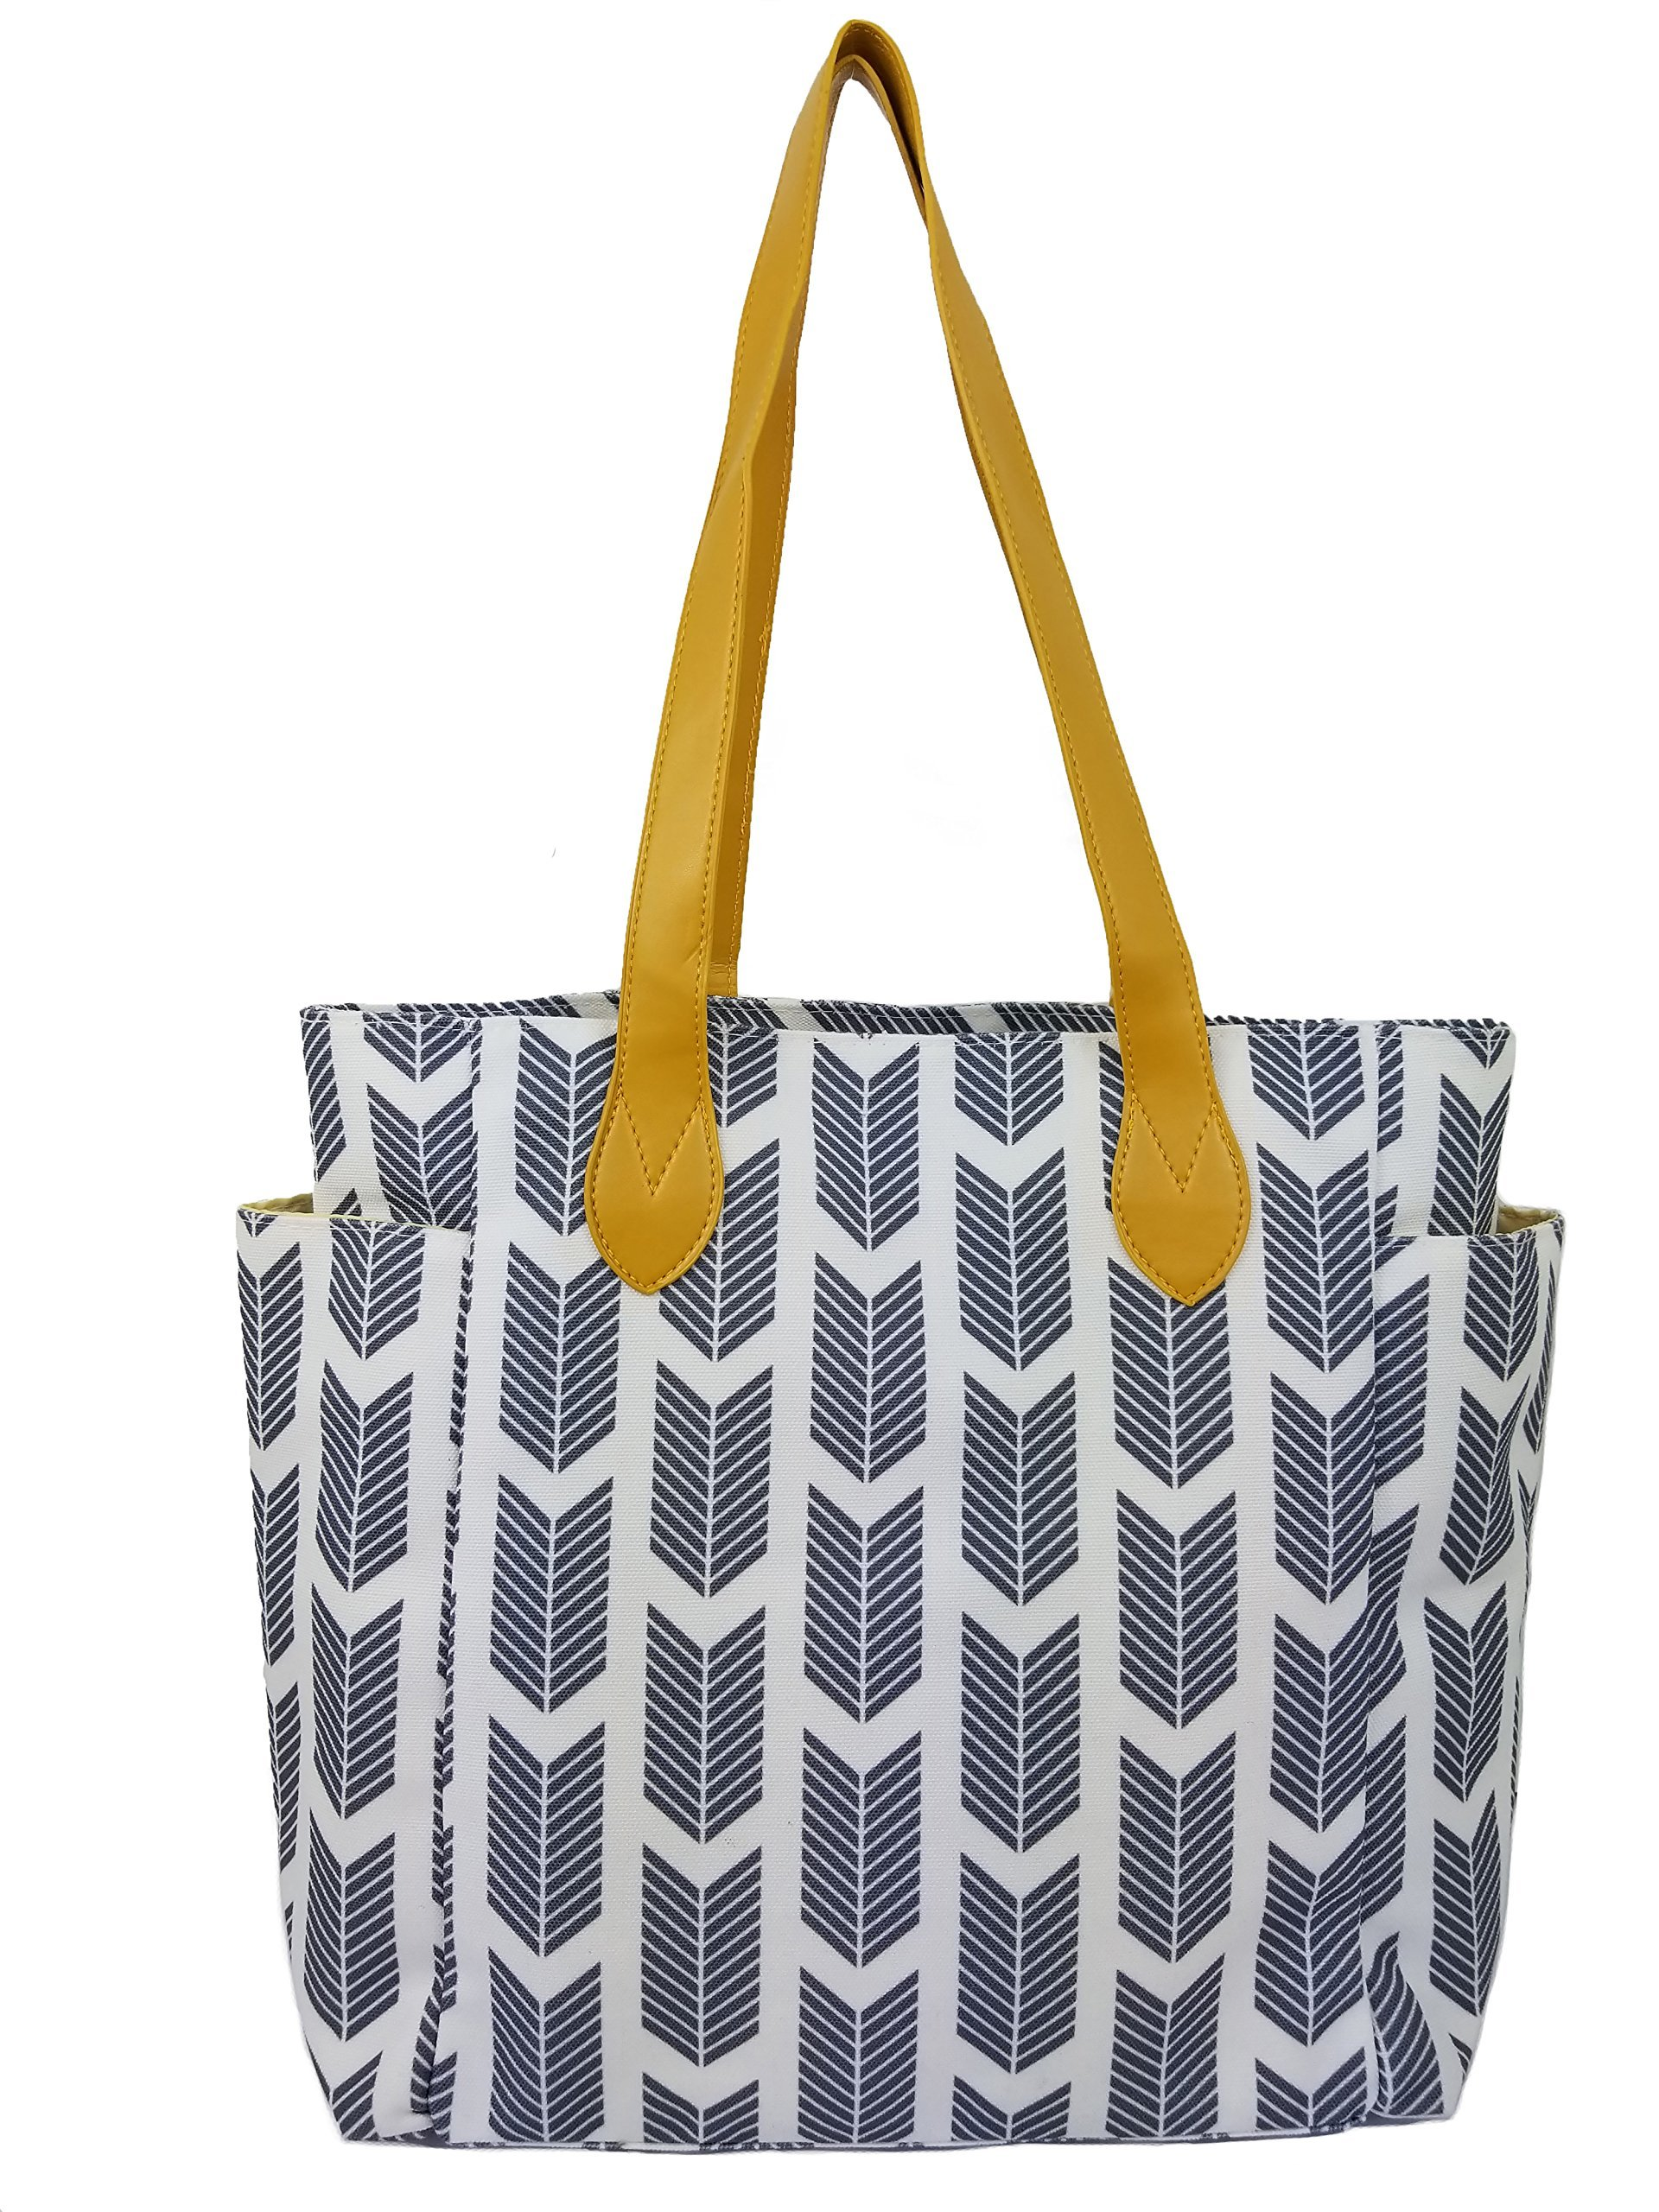 Tote bag with arrow print. This top handle shoulder handbag is Perfect for fall. Sale Today! (gray)